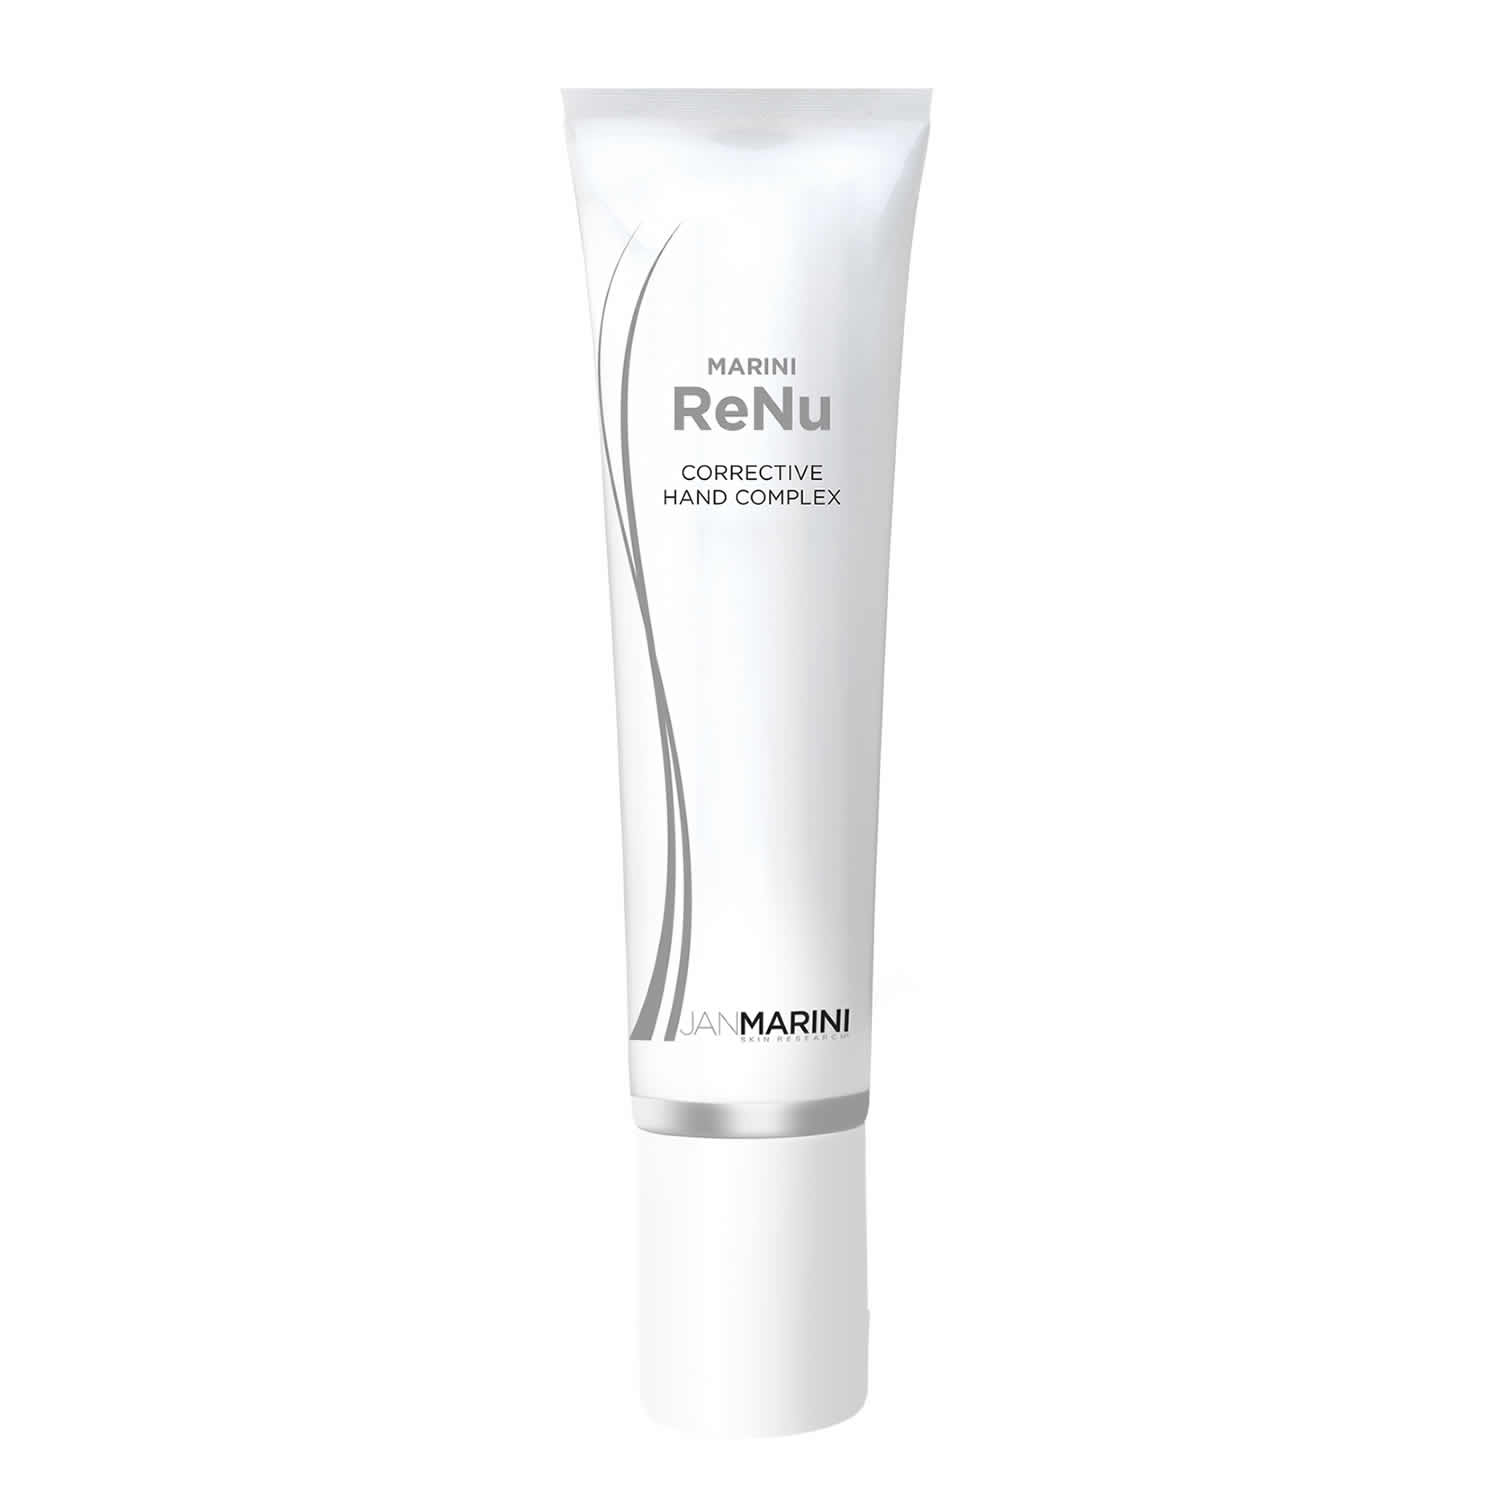 Jan Marini MARINI LUMINATE HAND CREAM (57 g / 2 oz)